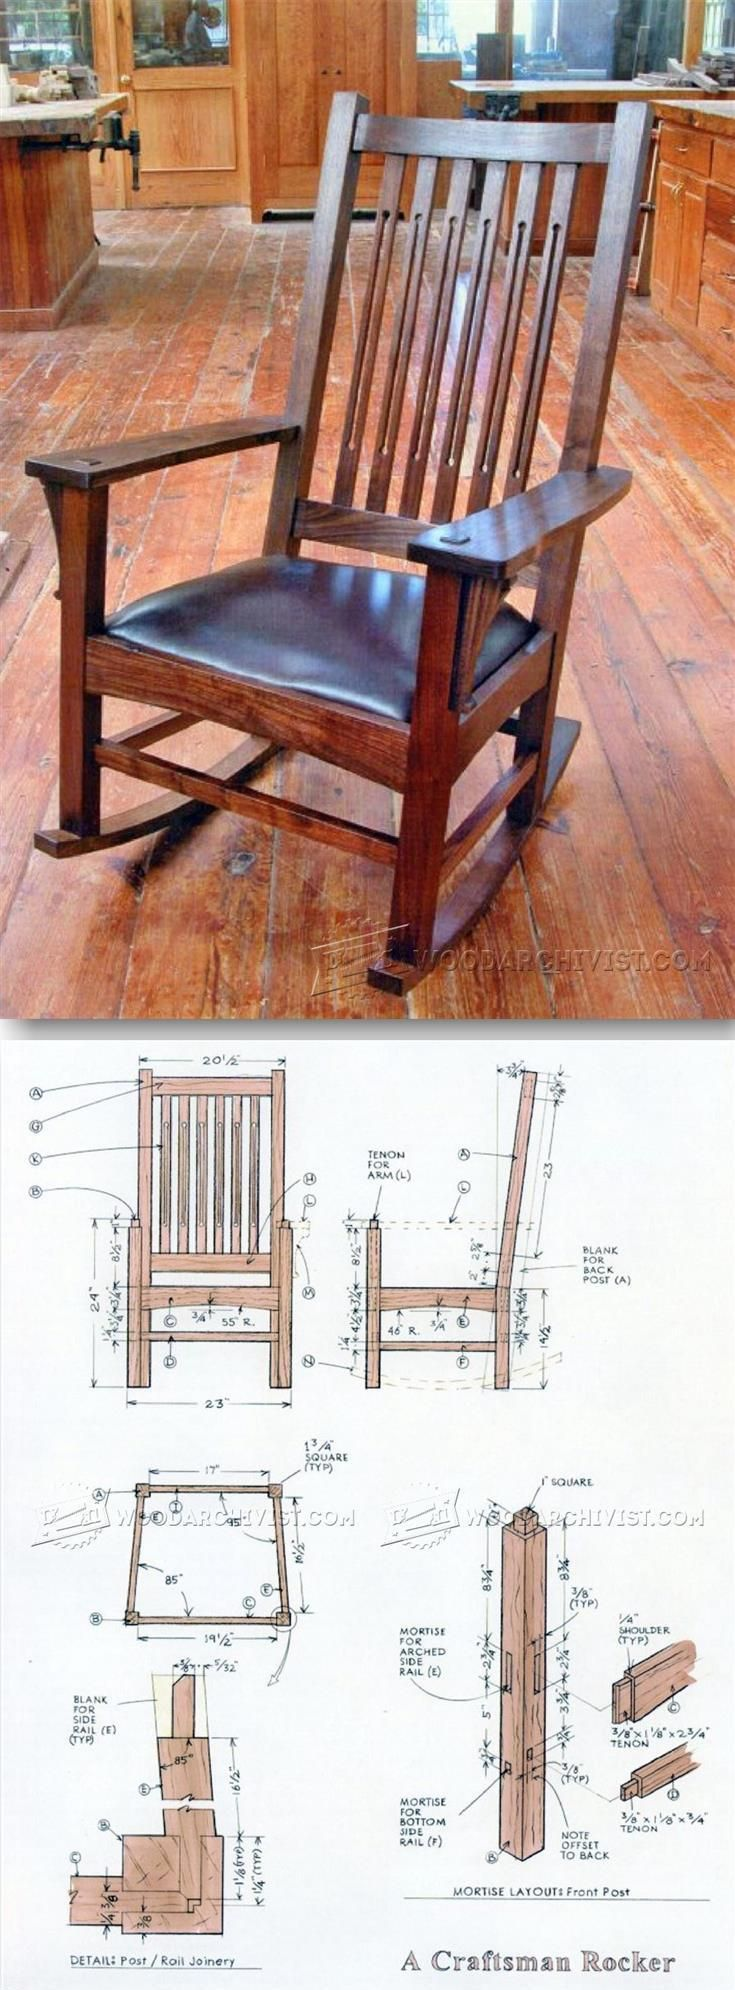 How to make a simple wooden rocking chair - Craftsman Rocking Chair Plans Furniture Plans And Projects Woodarchivist Com